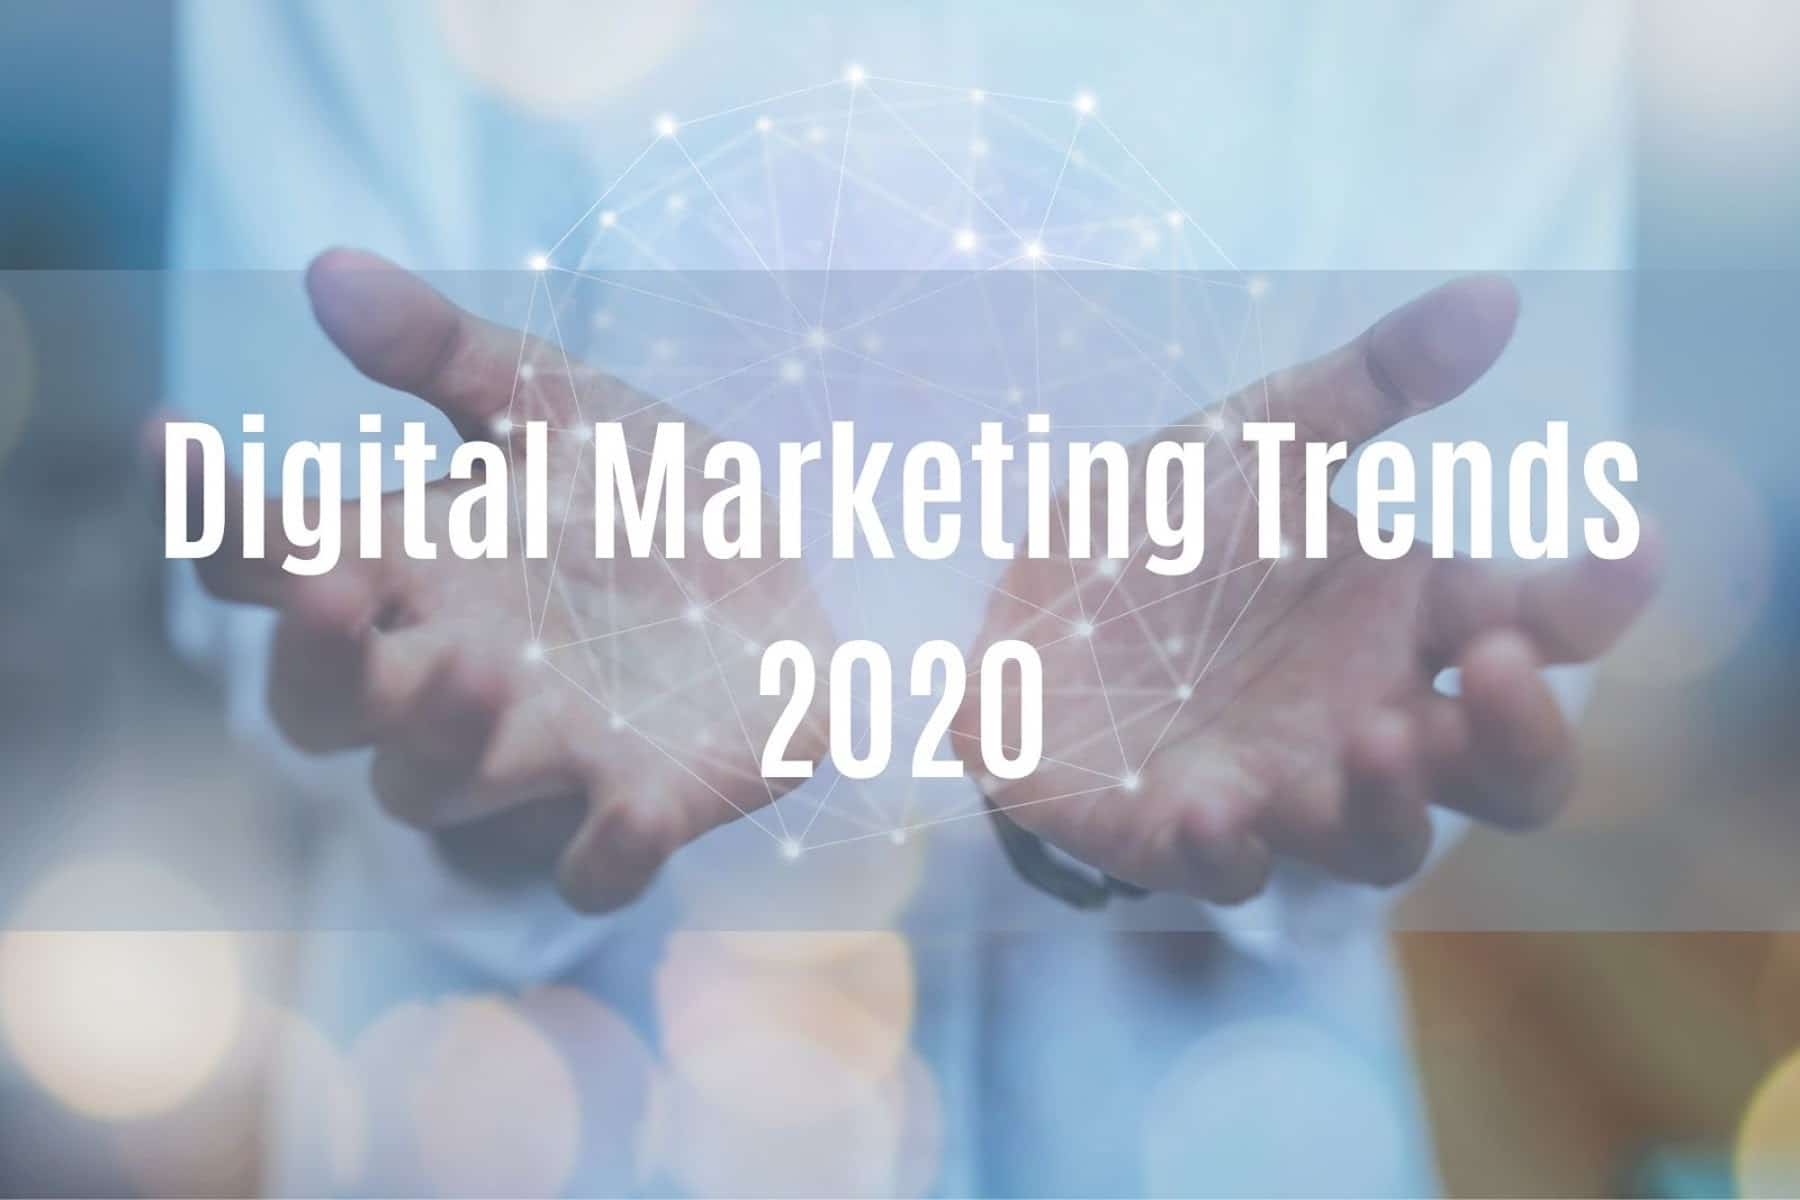 Digital Marketing Trends 2020